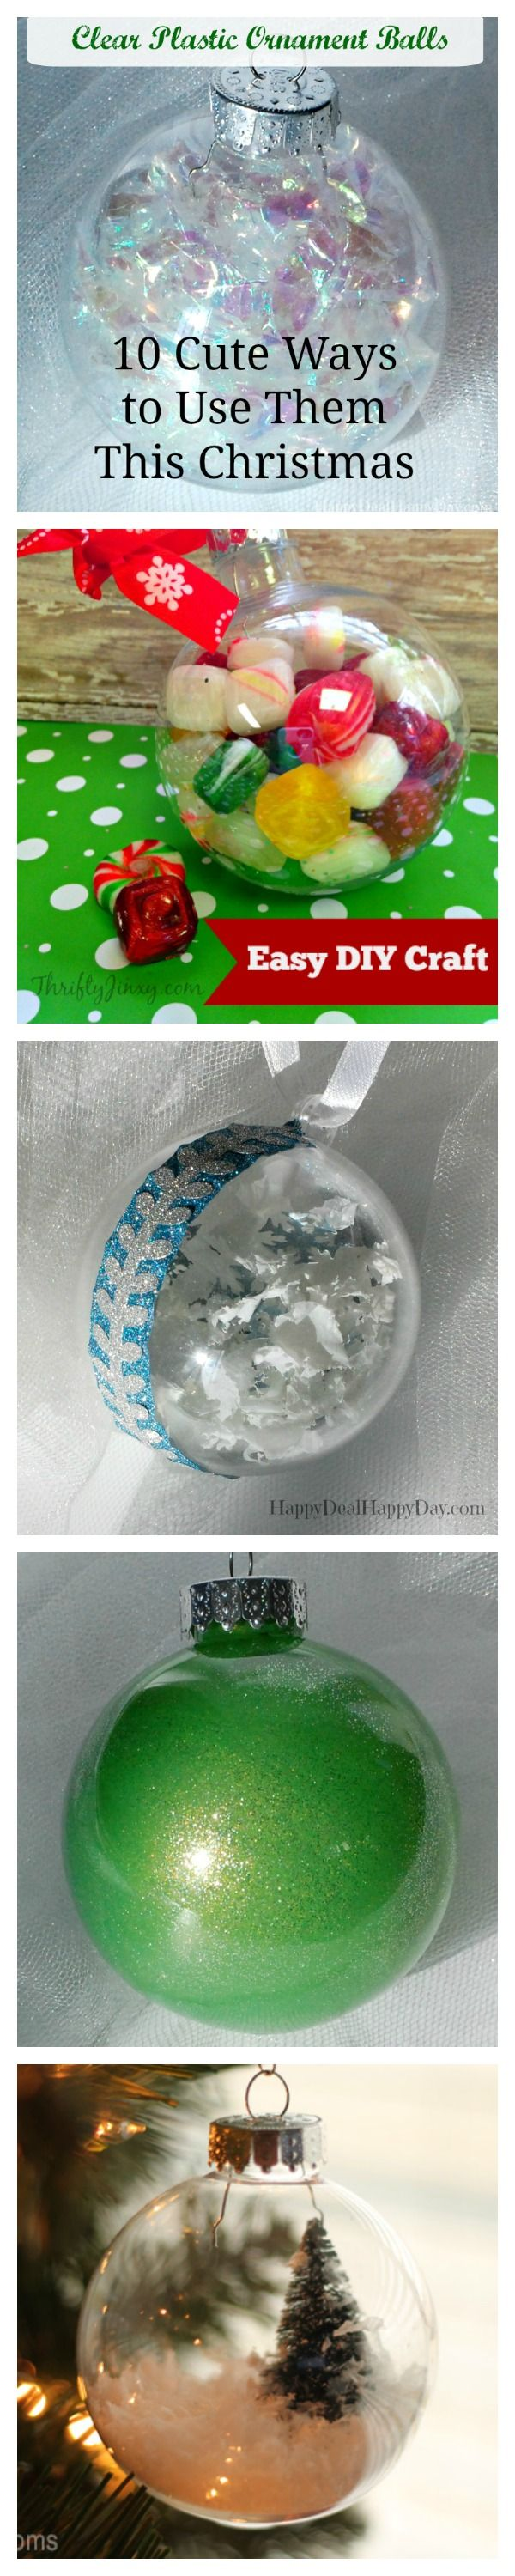 Clear Plastic Ornament Balls - 10 Cute Ways to Use Them This Christmas.  Many cute ideas in this post!   happydealhappyday.com